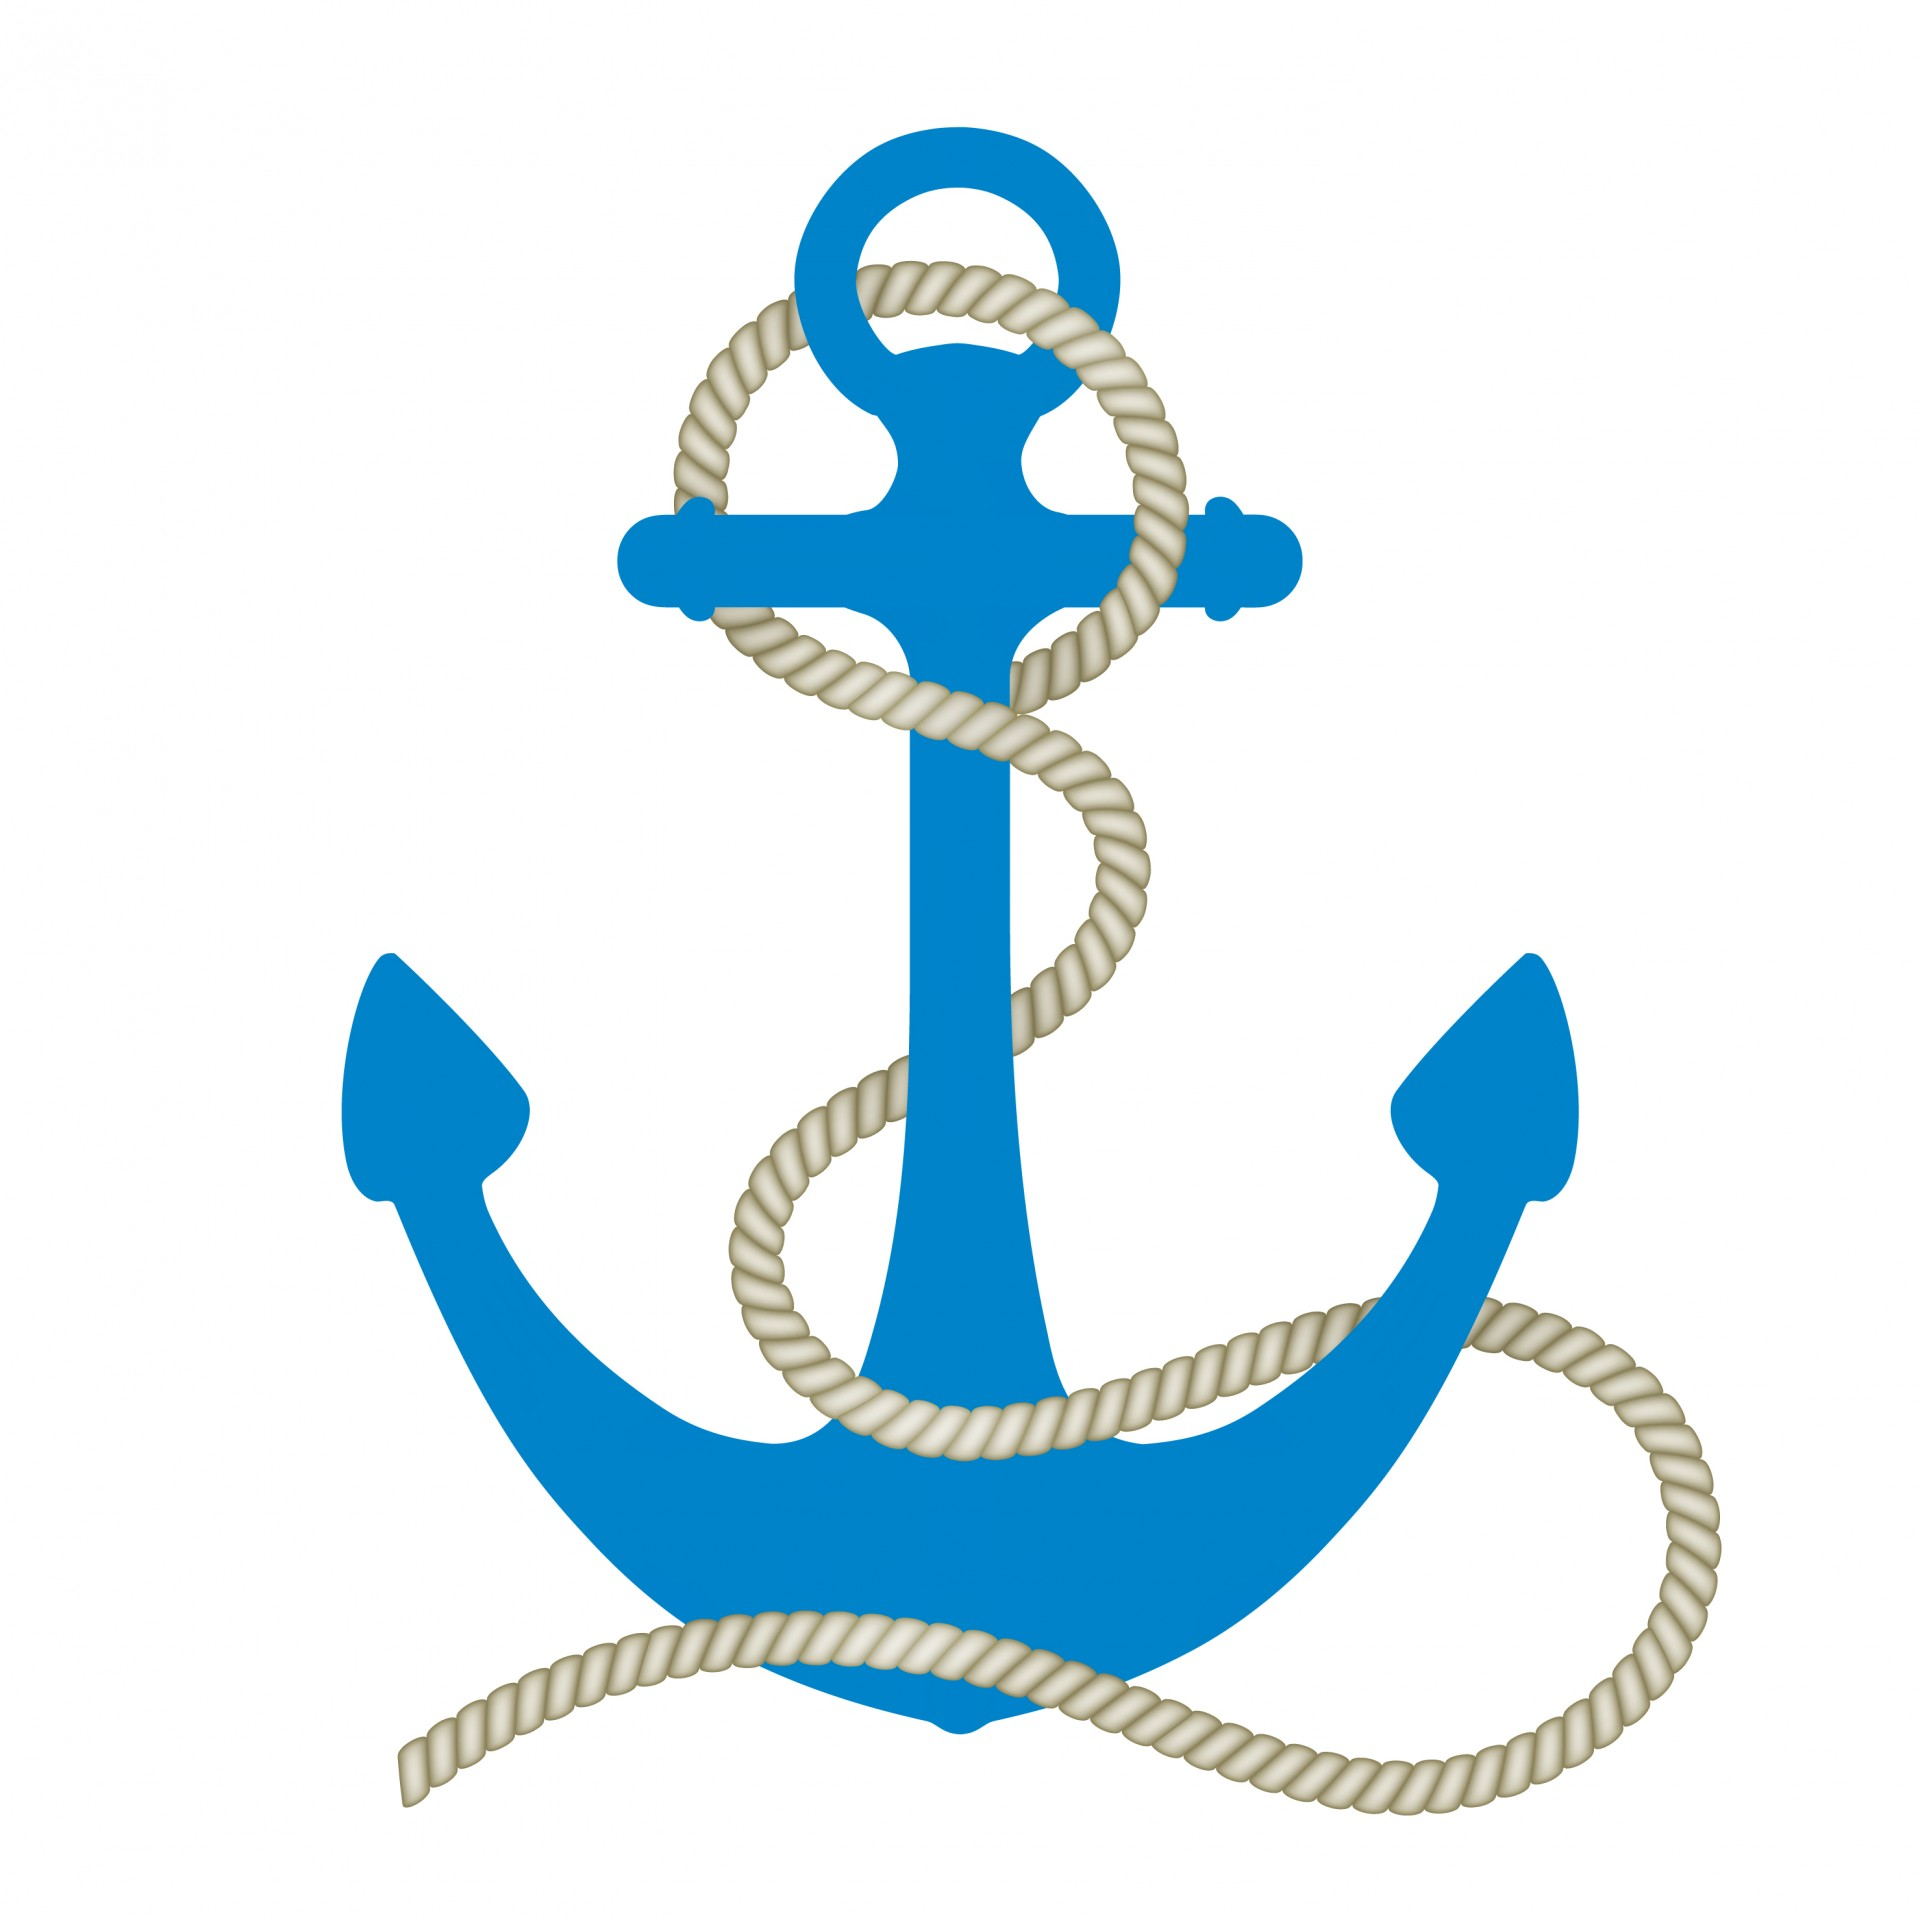 Free stock photo public. Clipart anchor